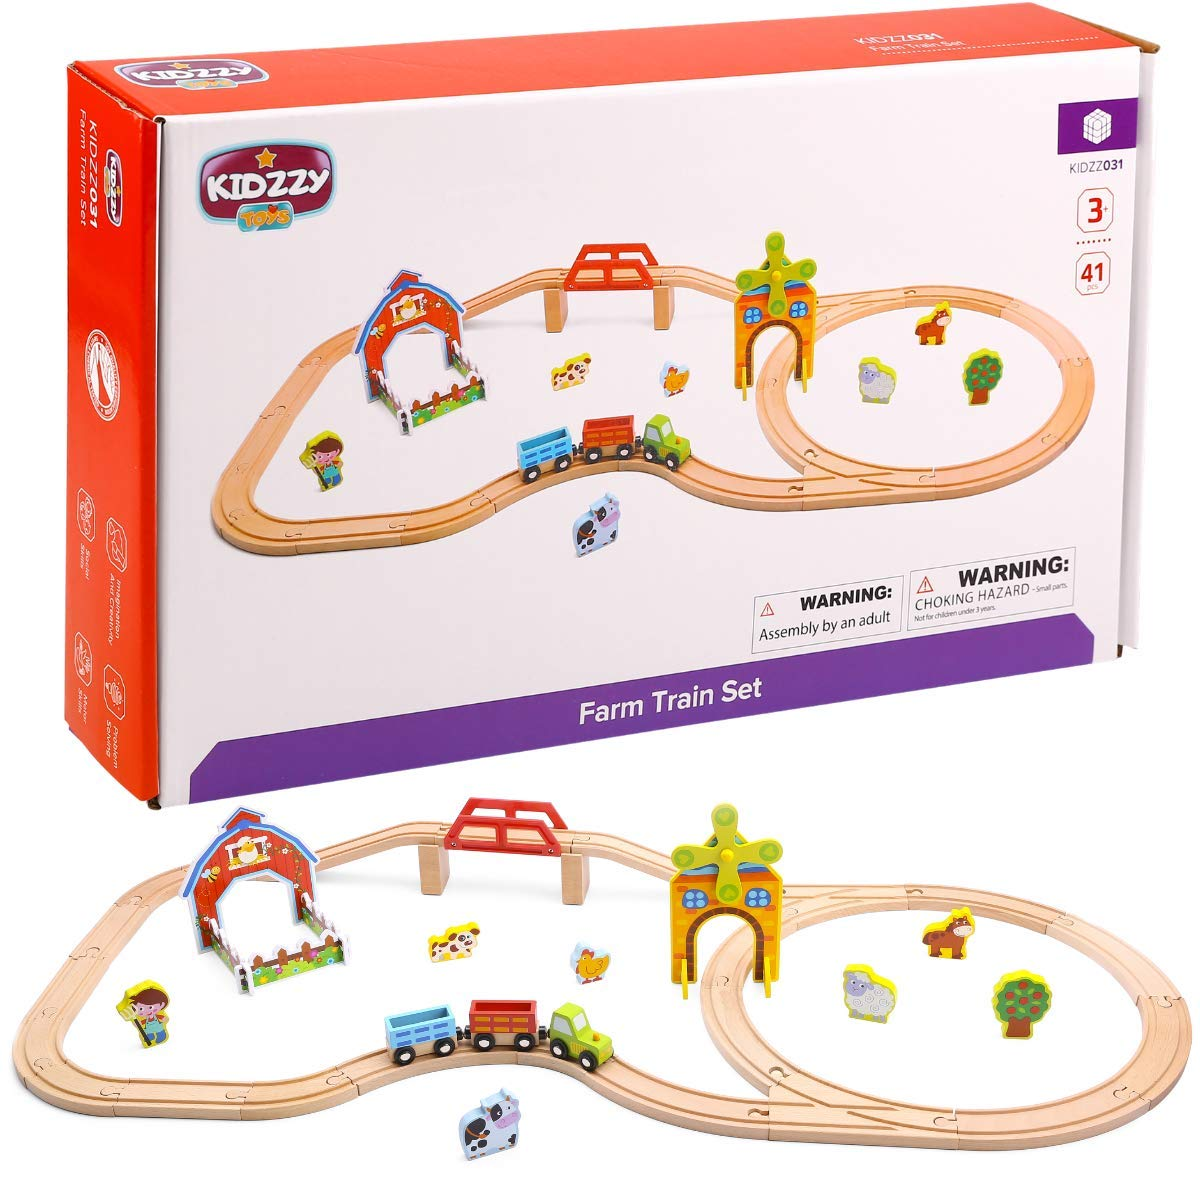 Top 9 Best Train Sets for Toddlers (2019 Reviews) 1